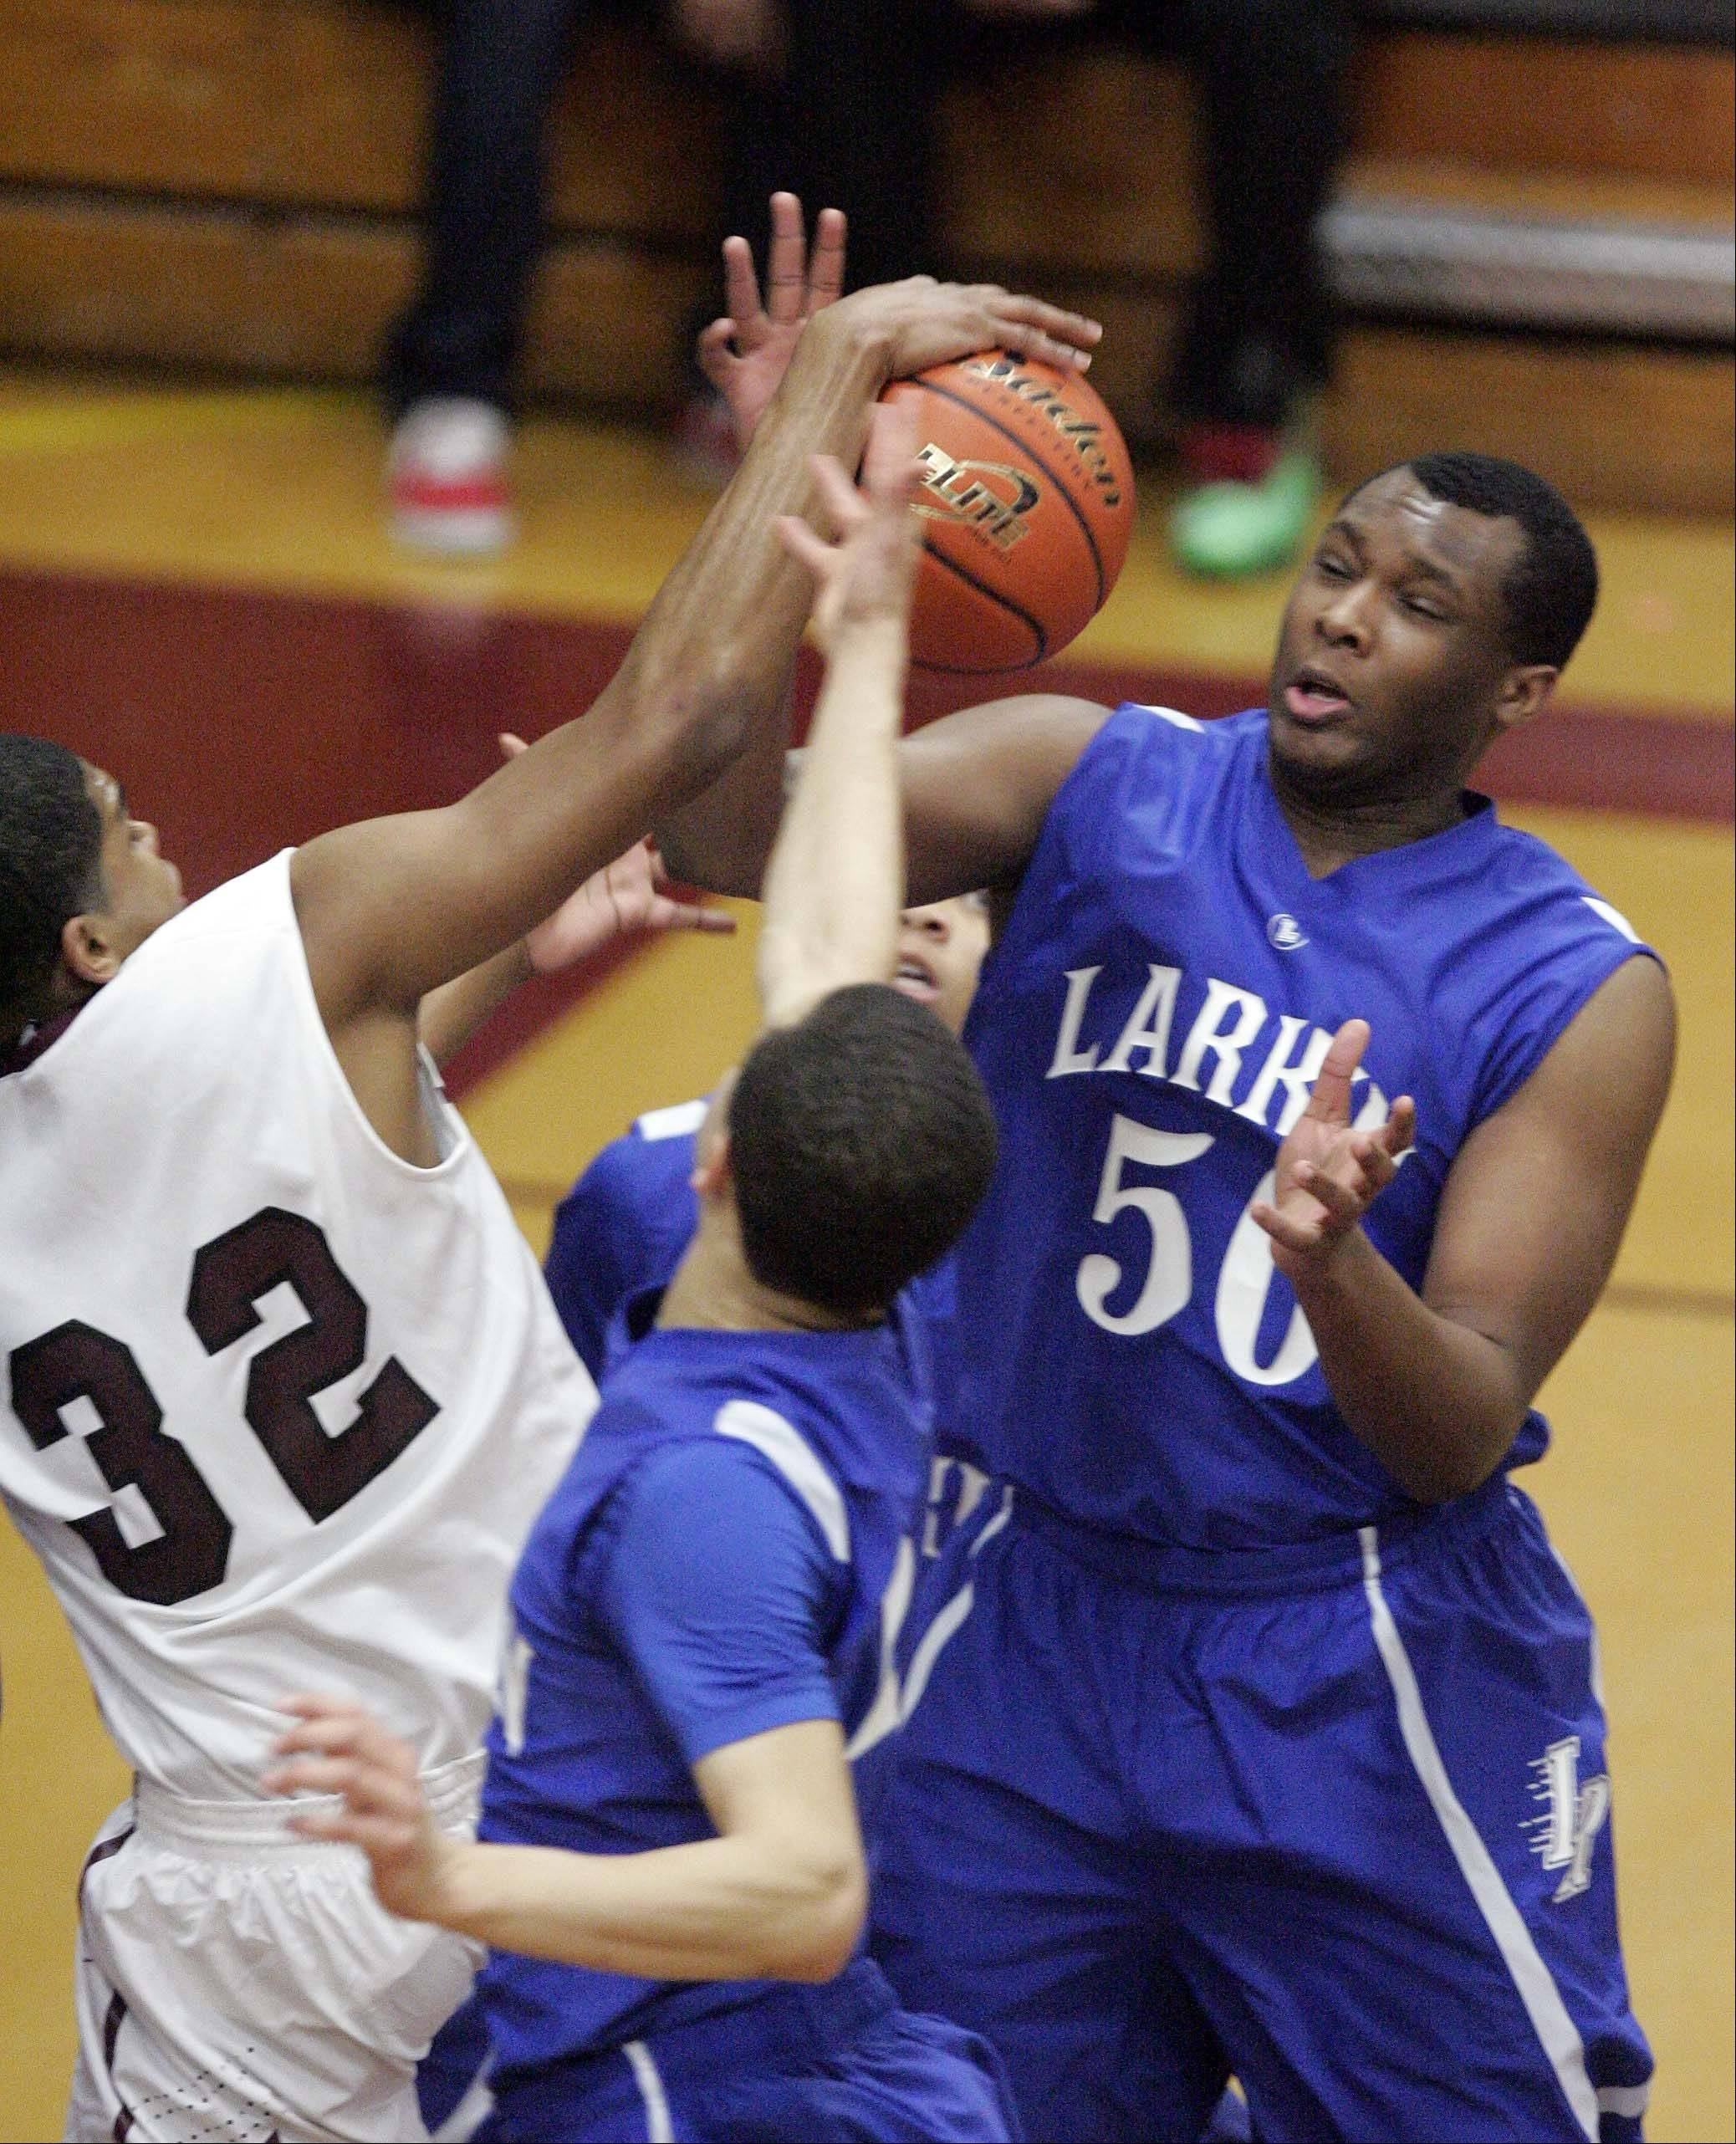 Images from the Larkin vs. Elgin boys basketball game Friday, February 1, 2013.